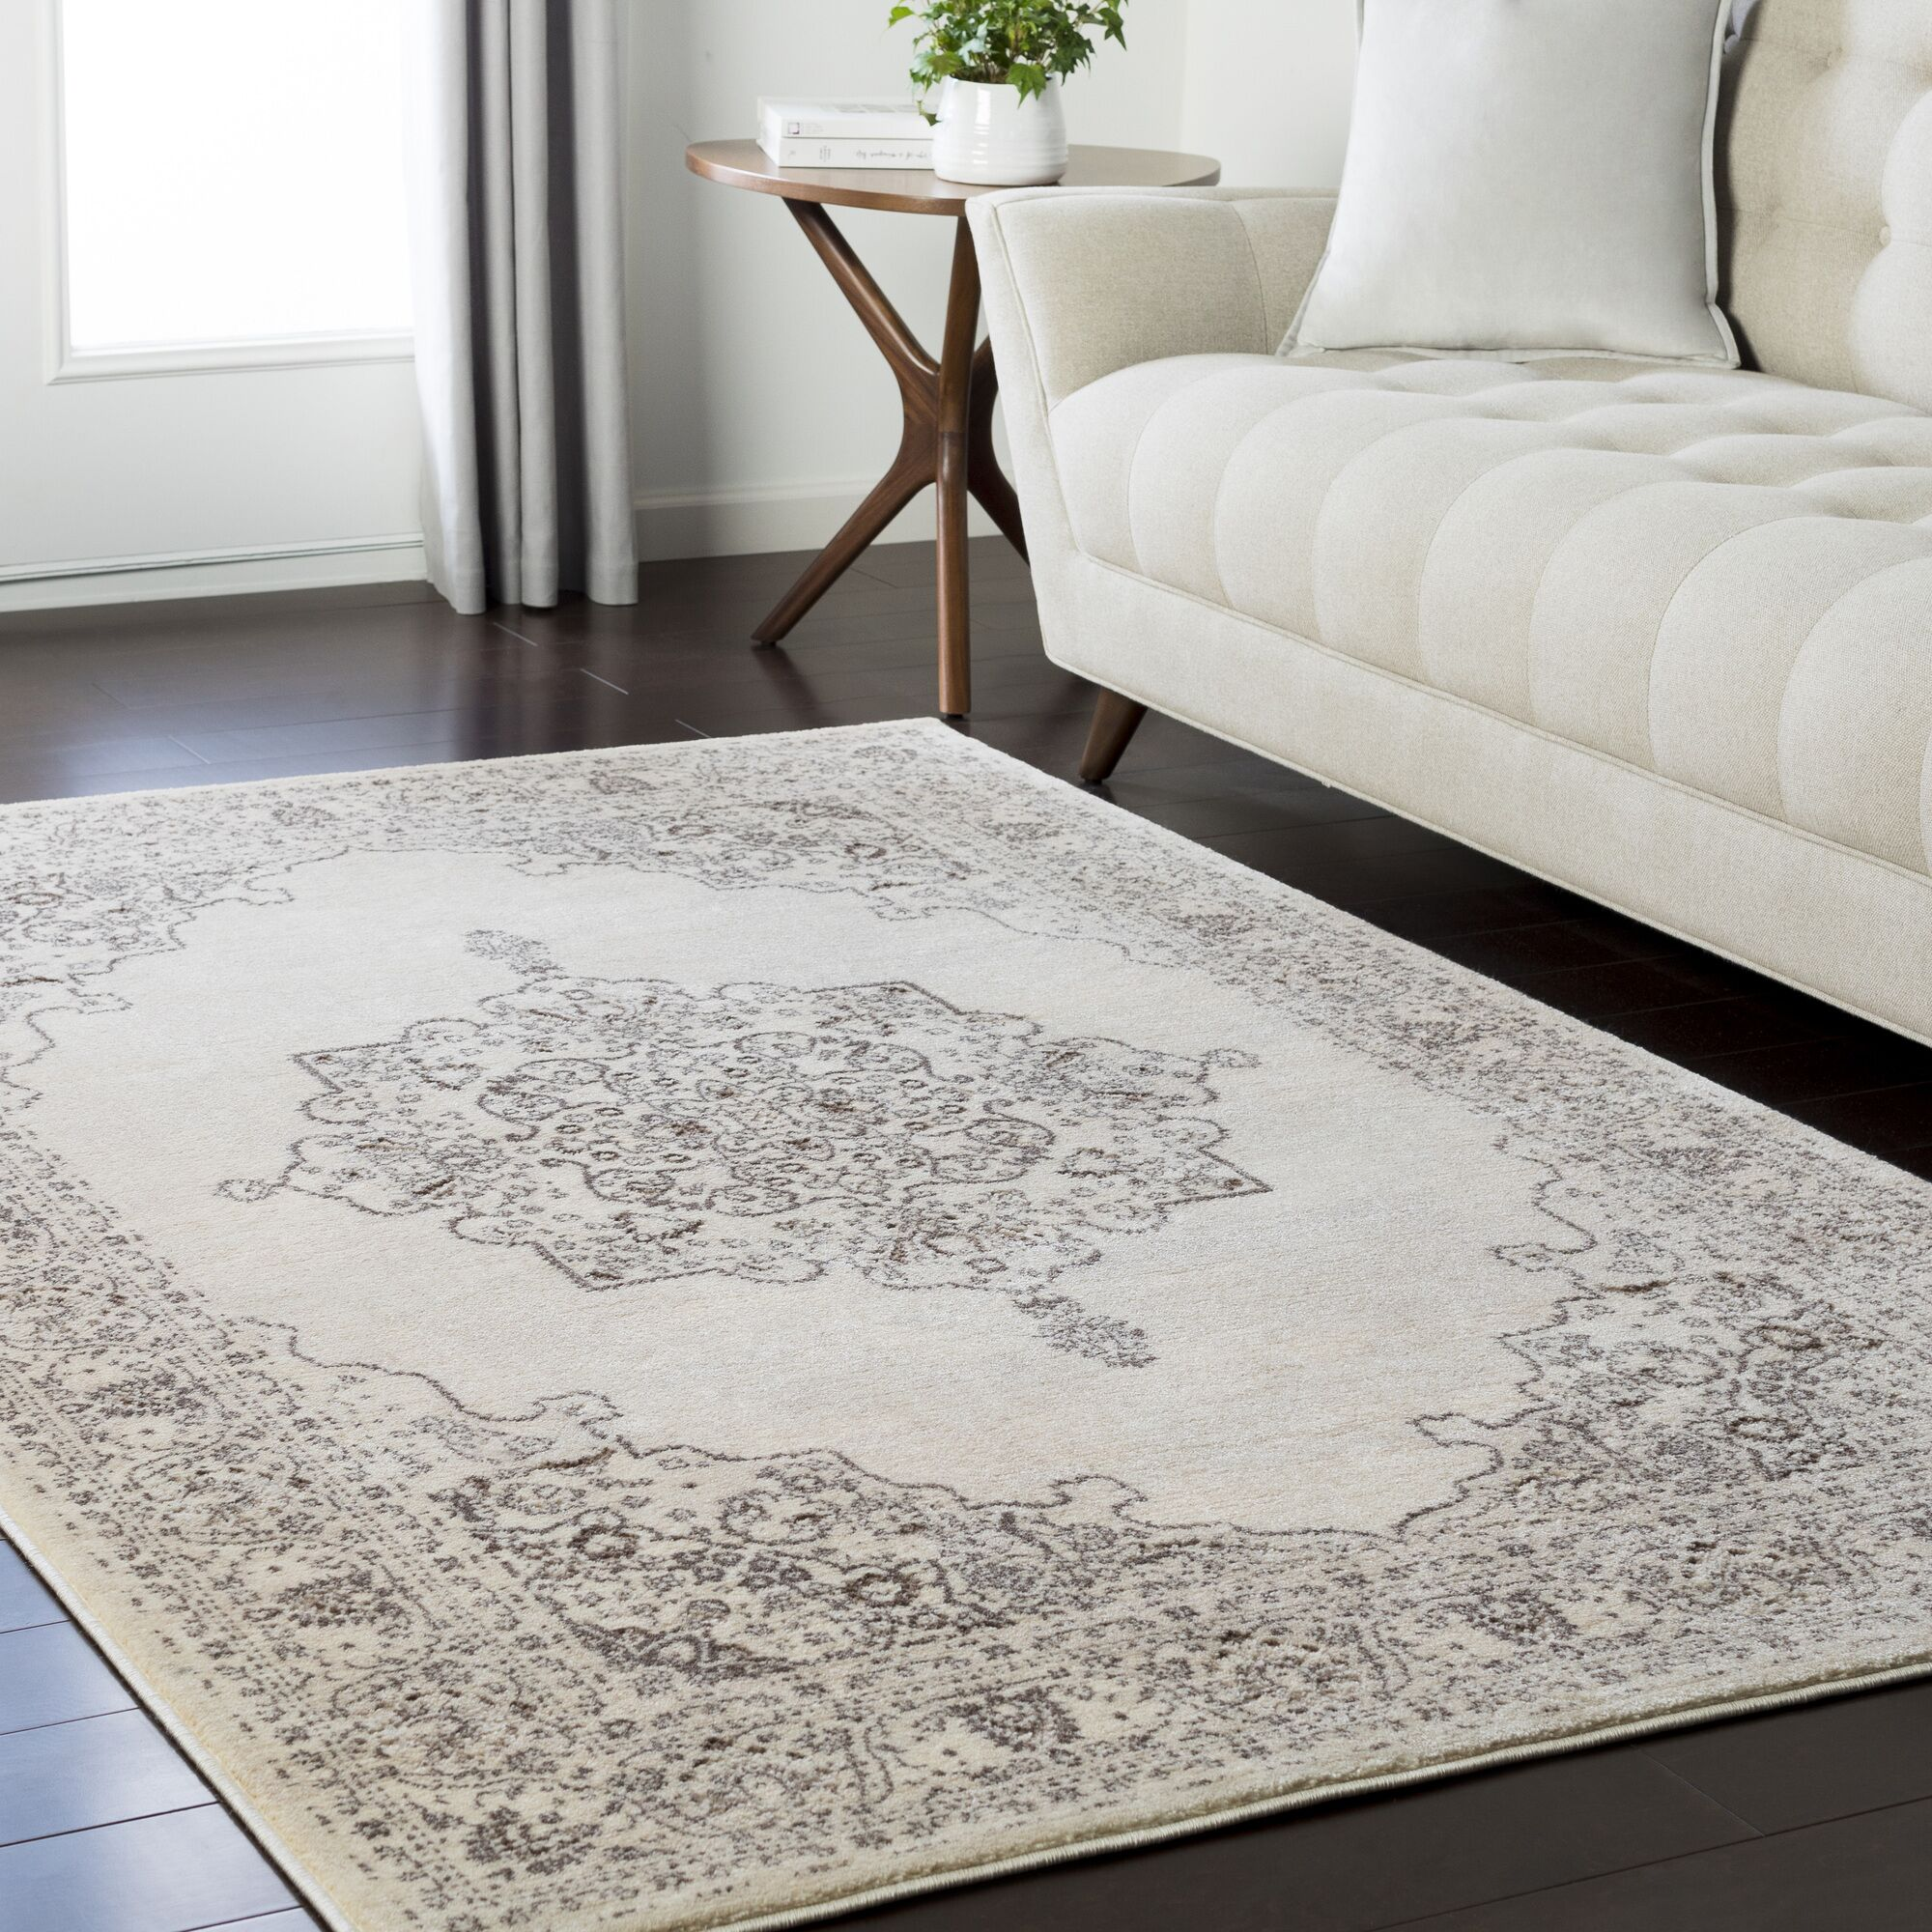 Synthia Brown Area Rug Rug Size: Rectangle 7'10